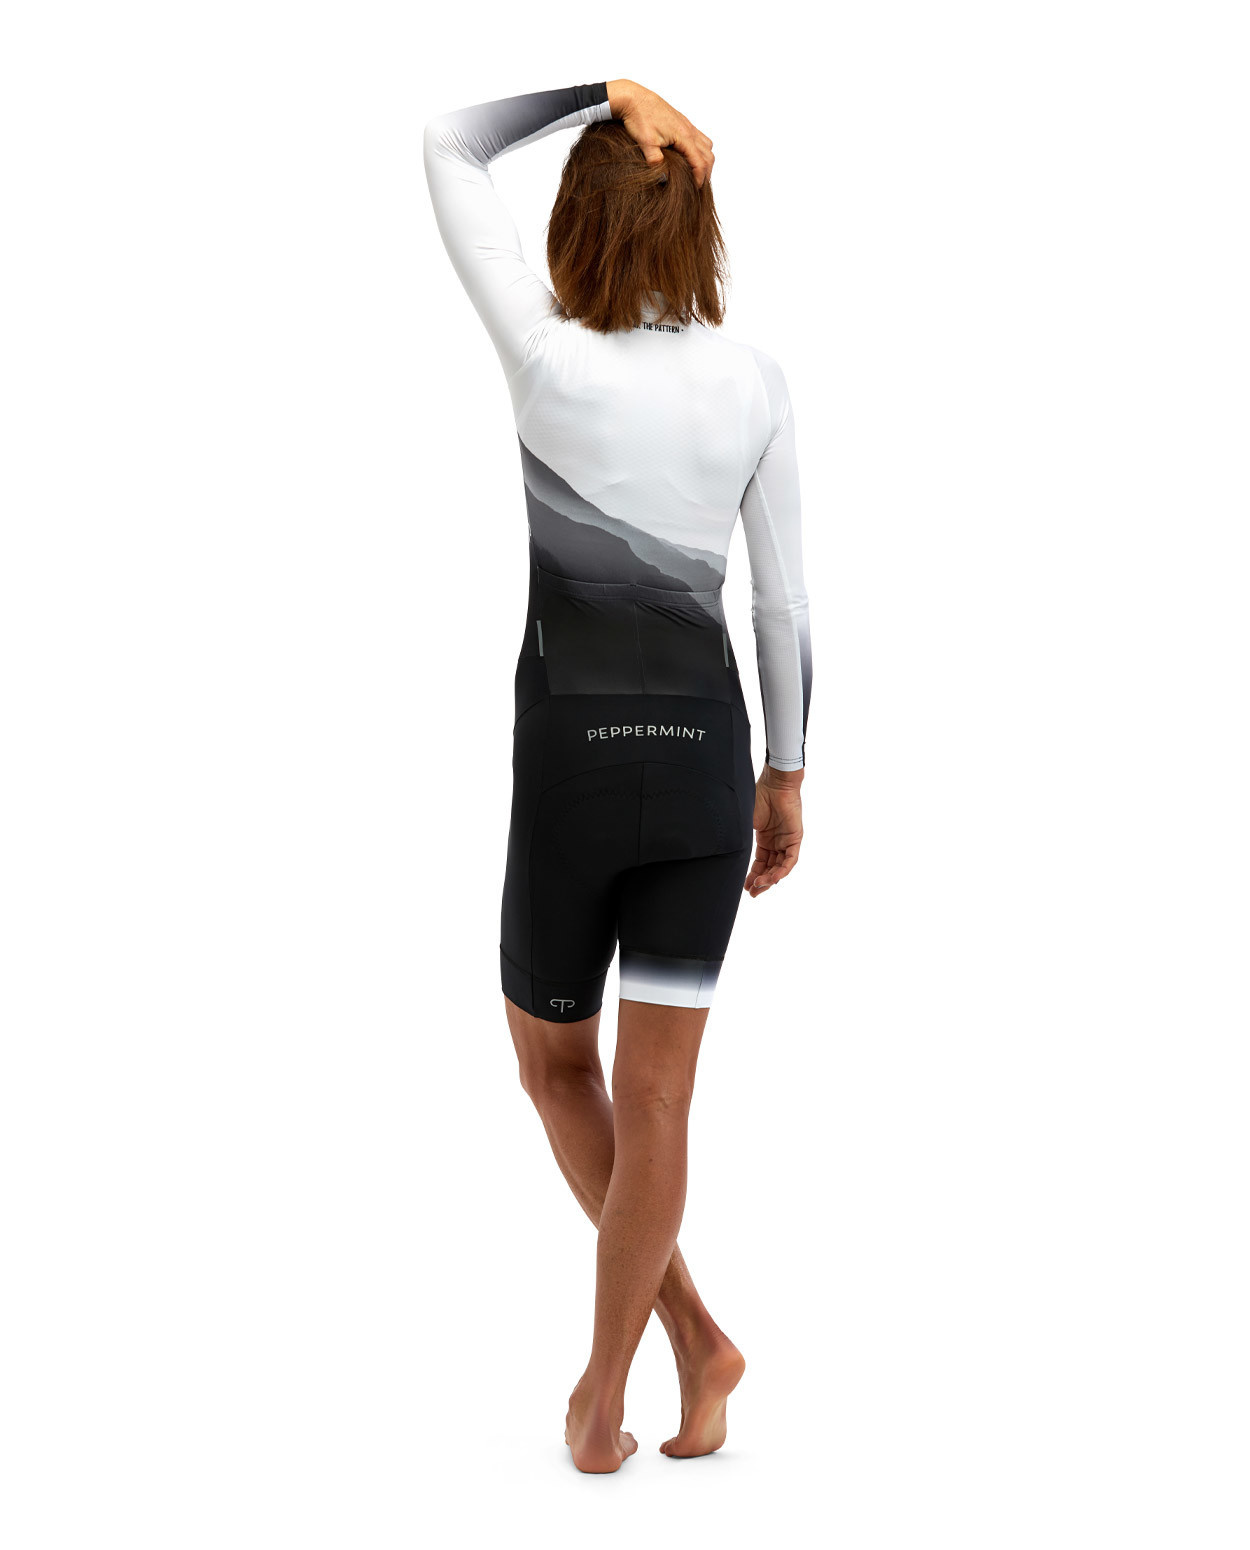 Peppermint Peppermint Signature Long Sleeve Skin Suit Women's